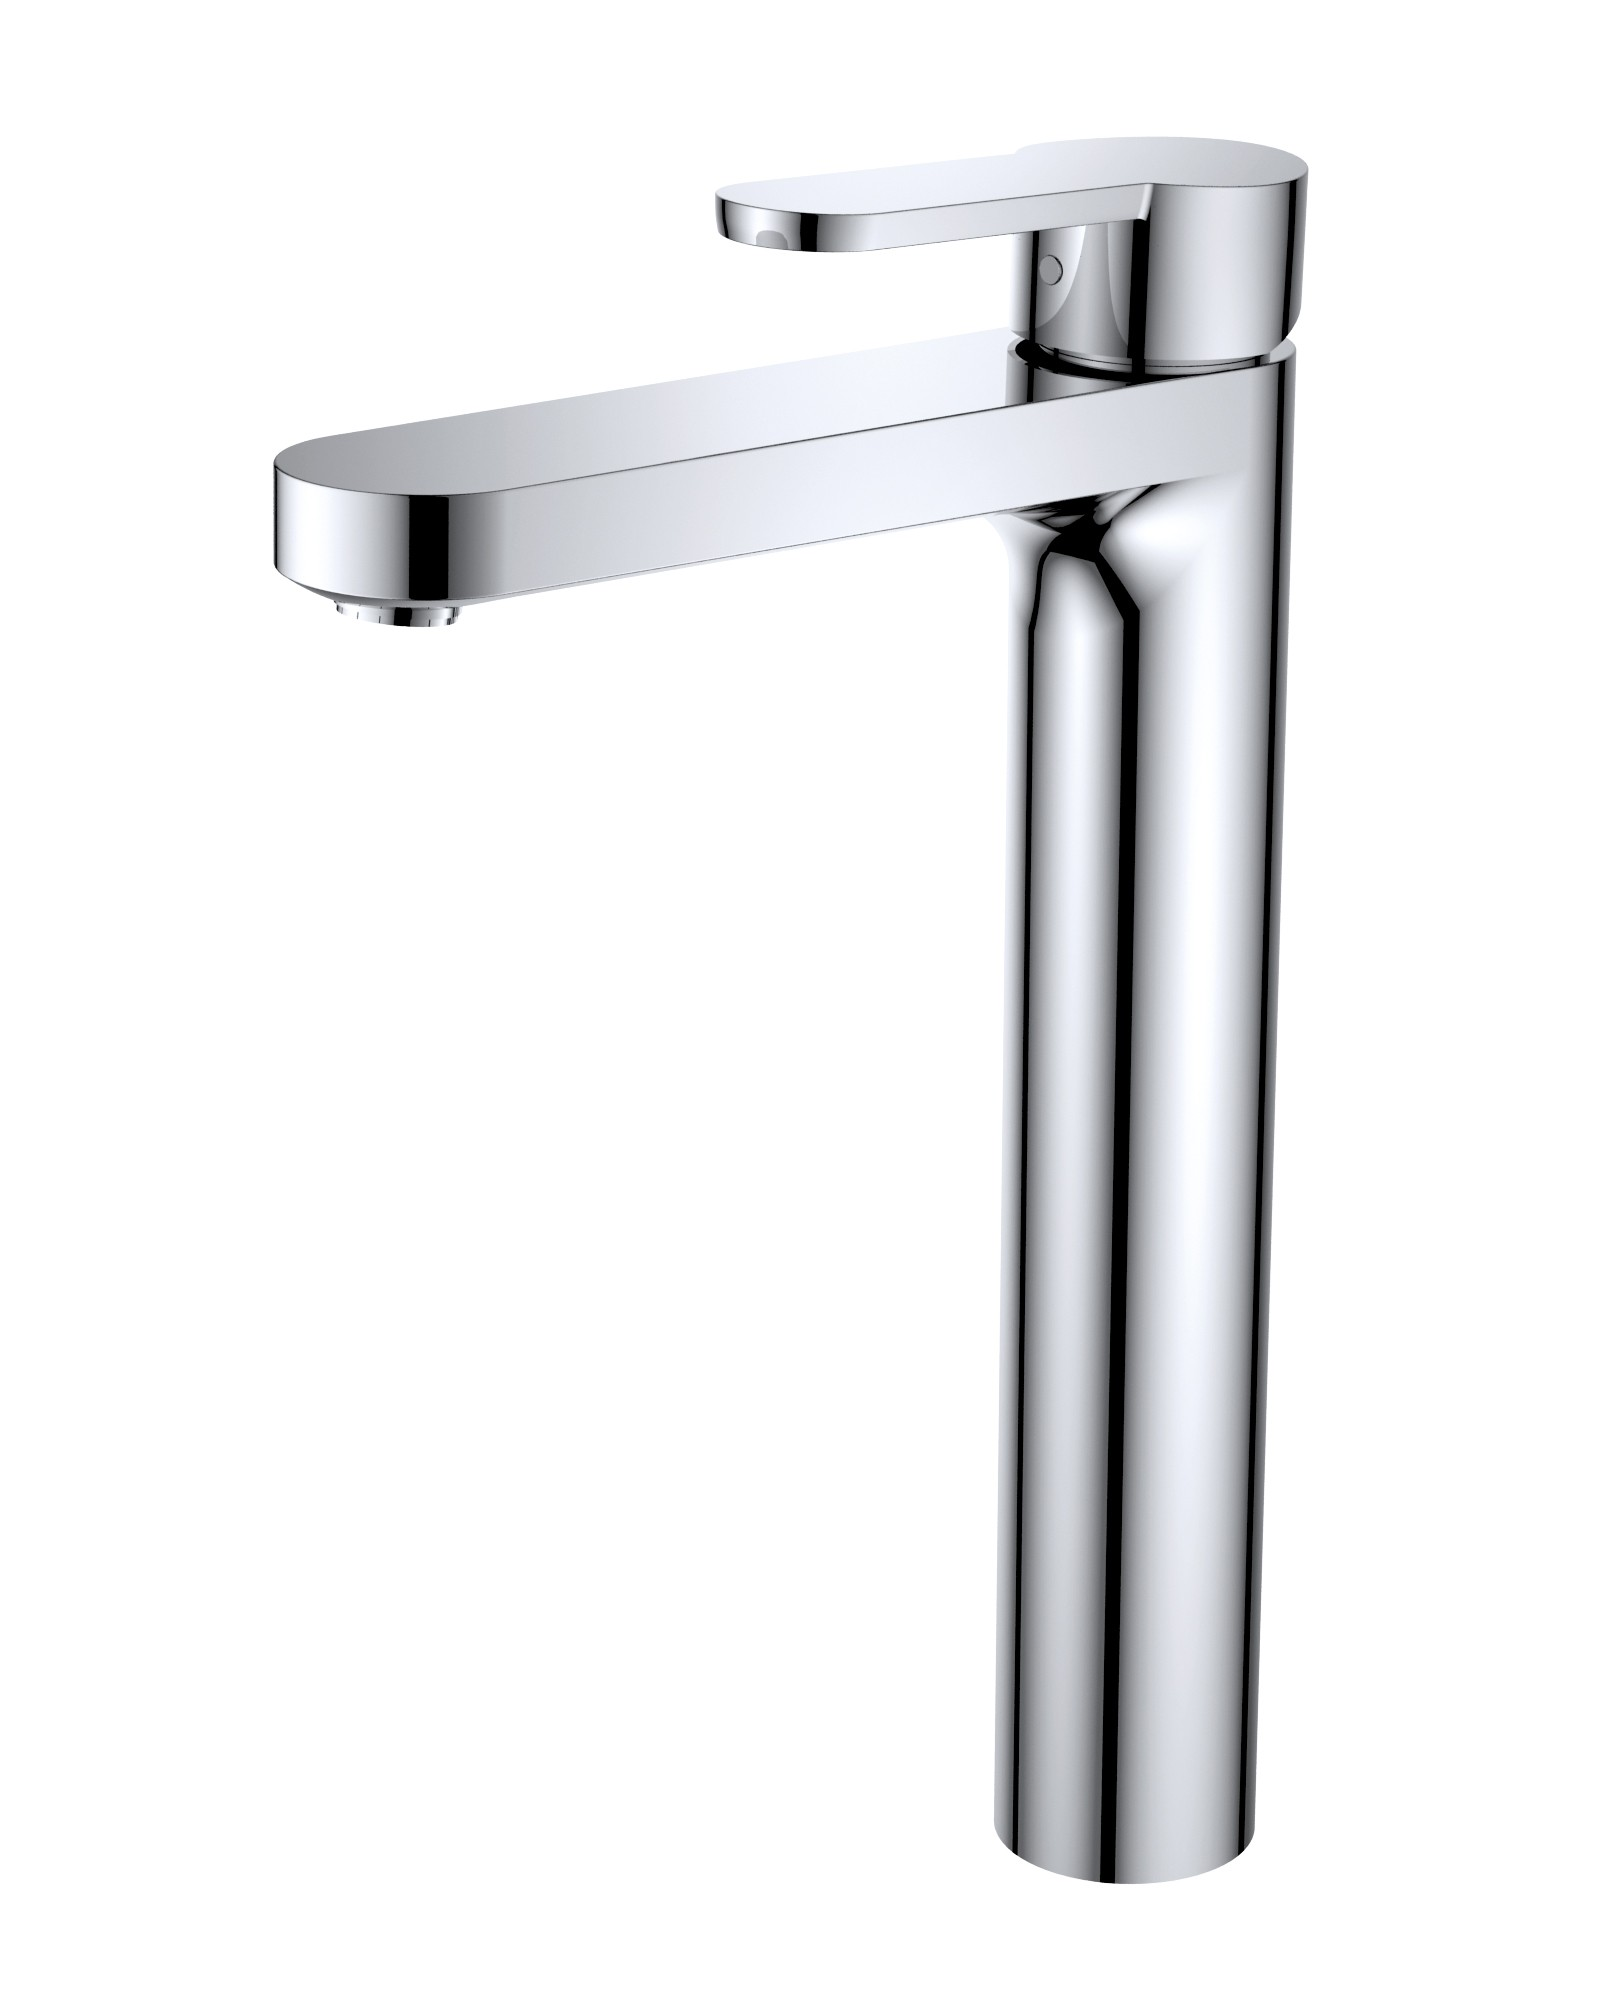 ARGENT LOFT VESSEL BASIN MIXER CHROME